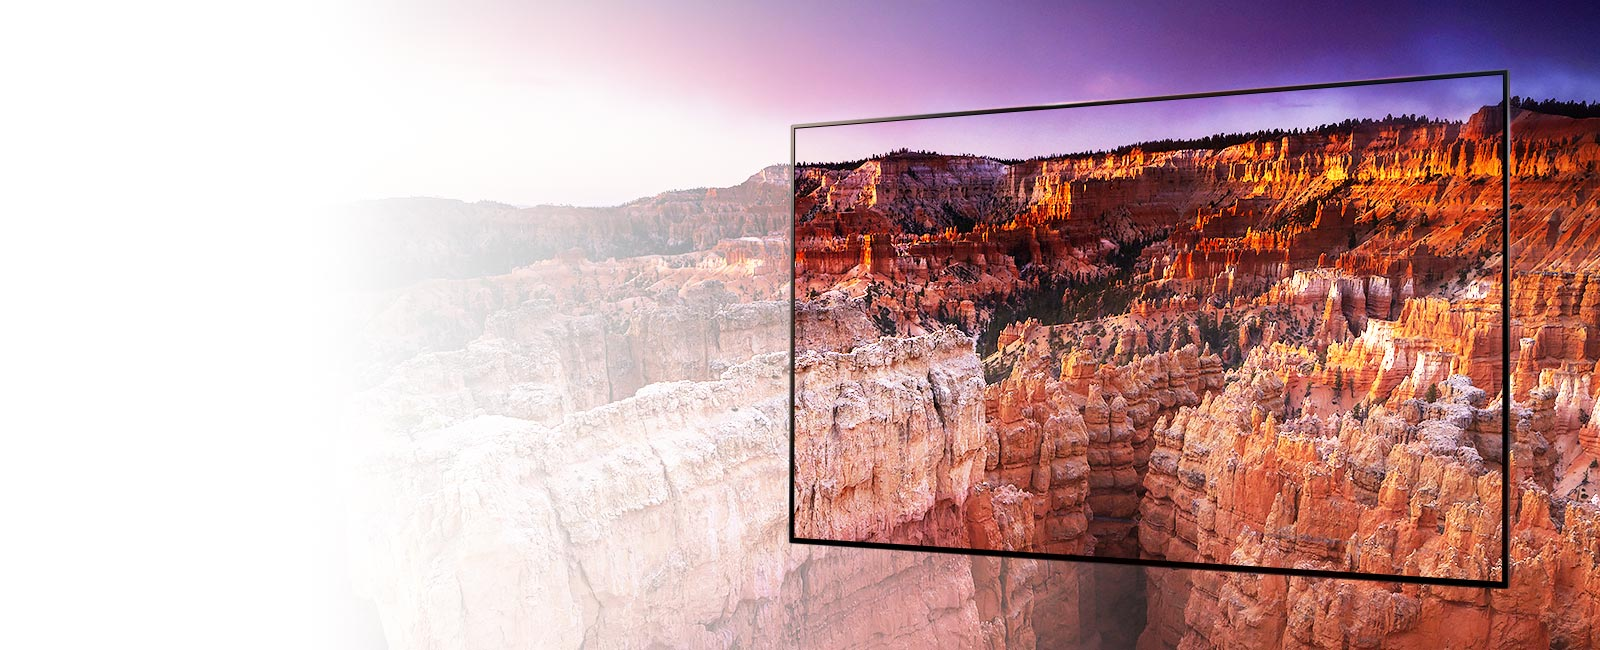 A frame capturing the scenery of Bryce Canyon National Park